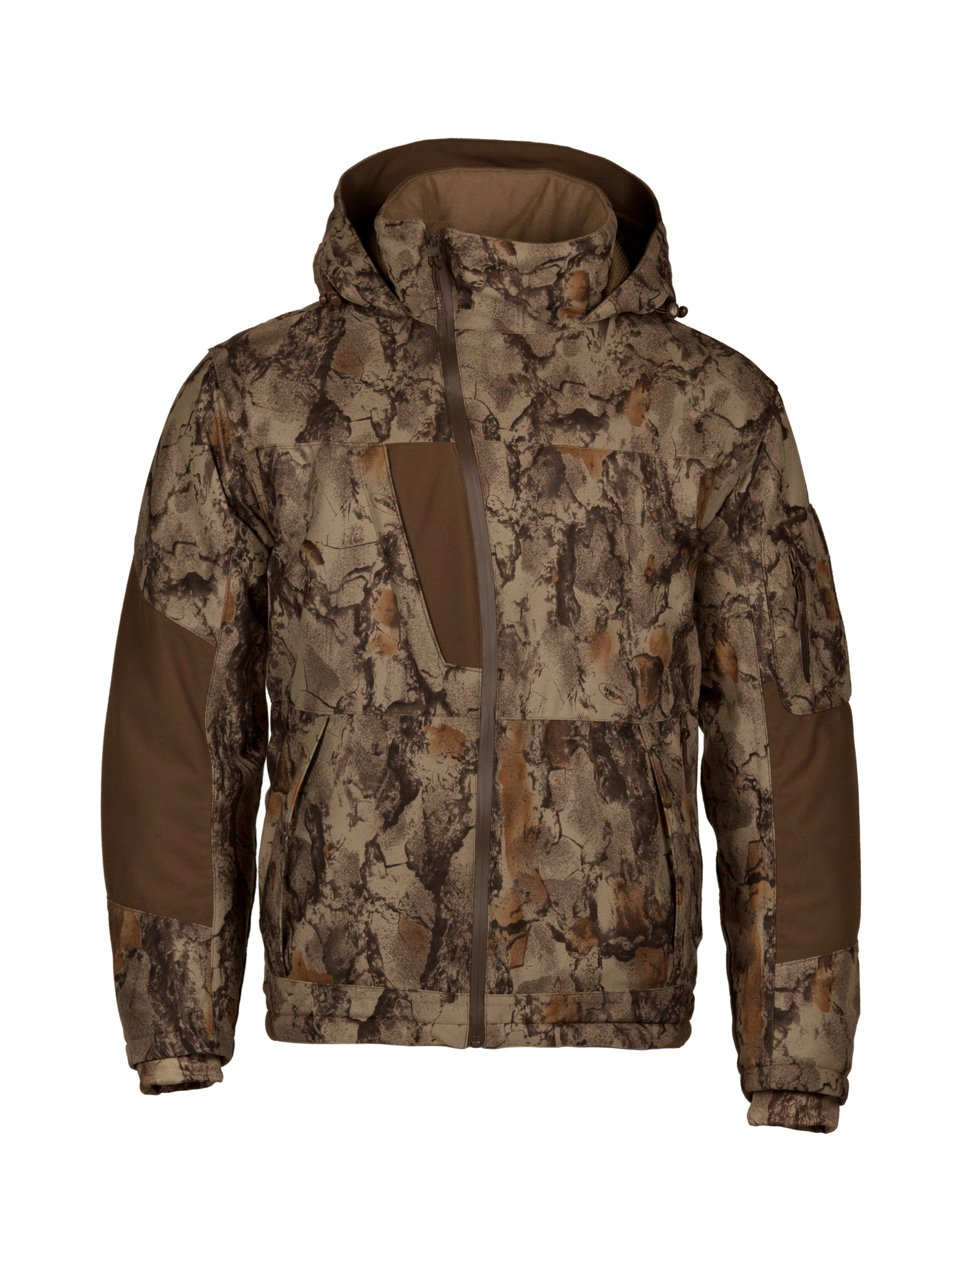 49d4971db2a72 Natural Gear Waterproof Camo Parka for Men and Women, Full-Zip Hunting Parka  Jacket with Hood, Women's and Men's Windproof Hunting Jacket